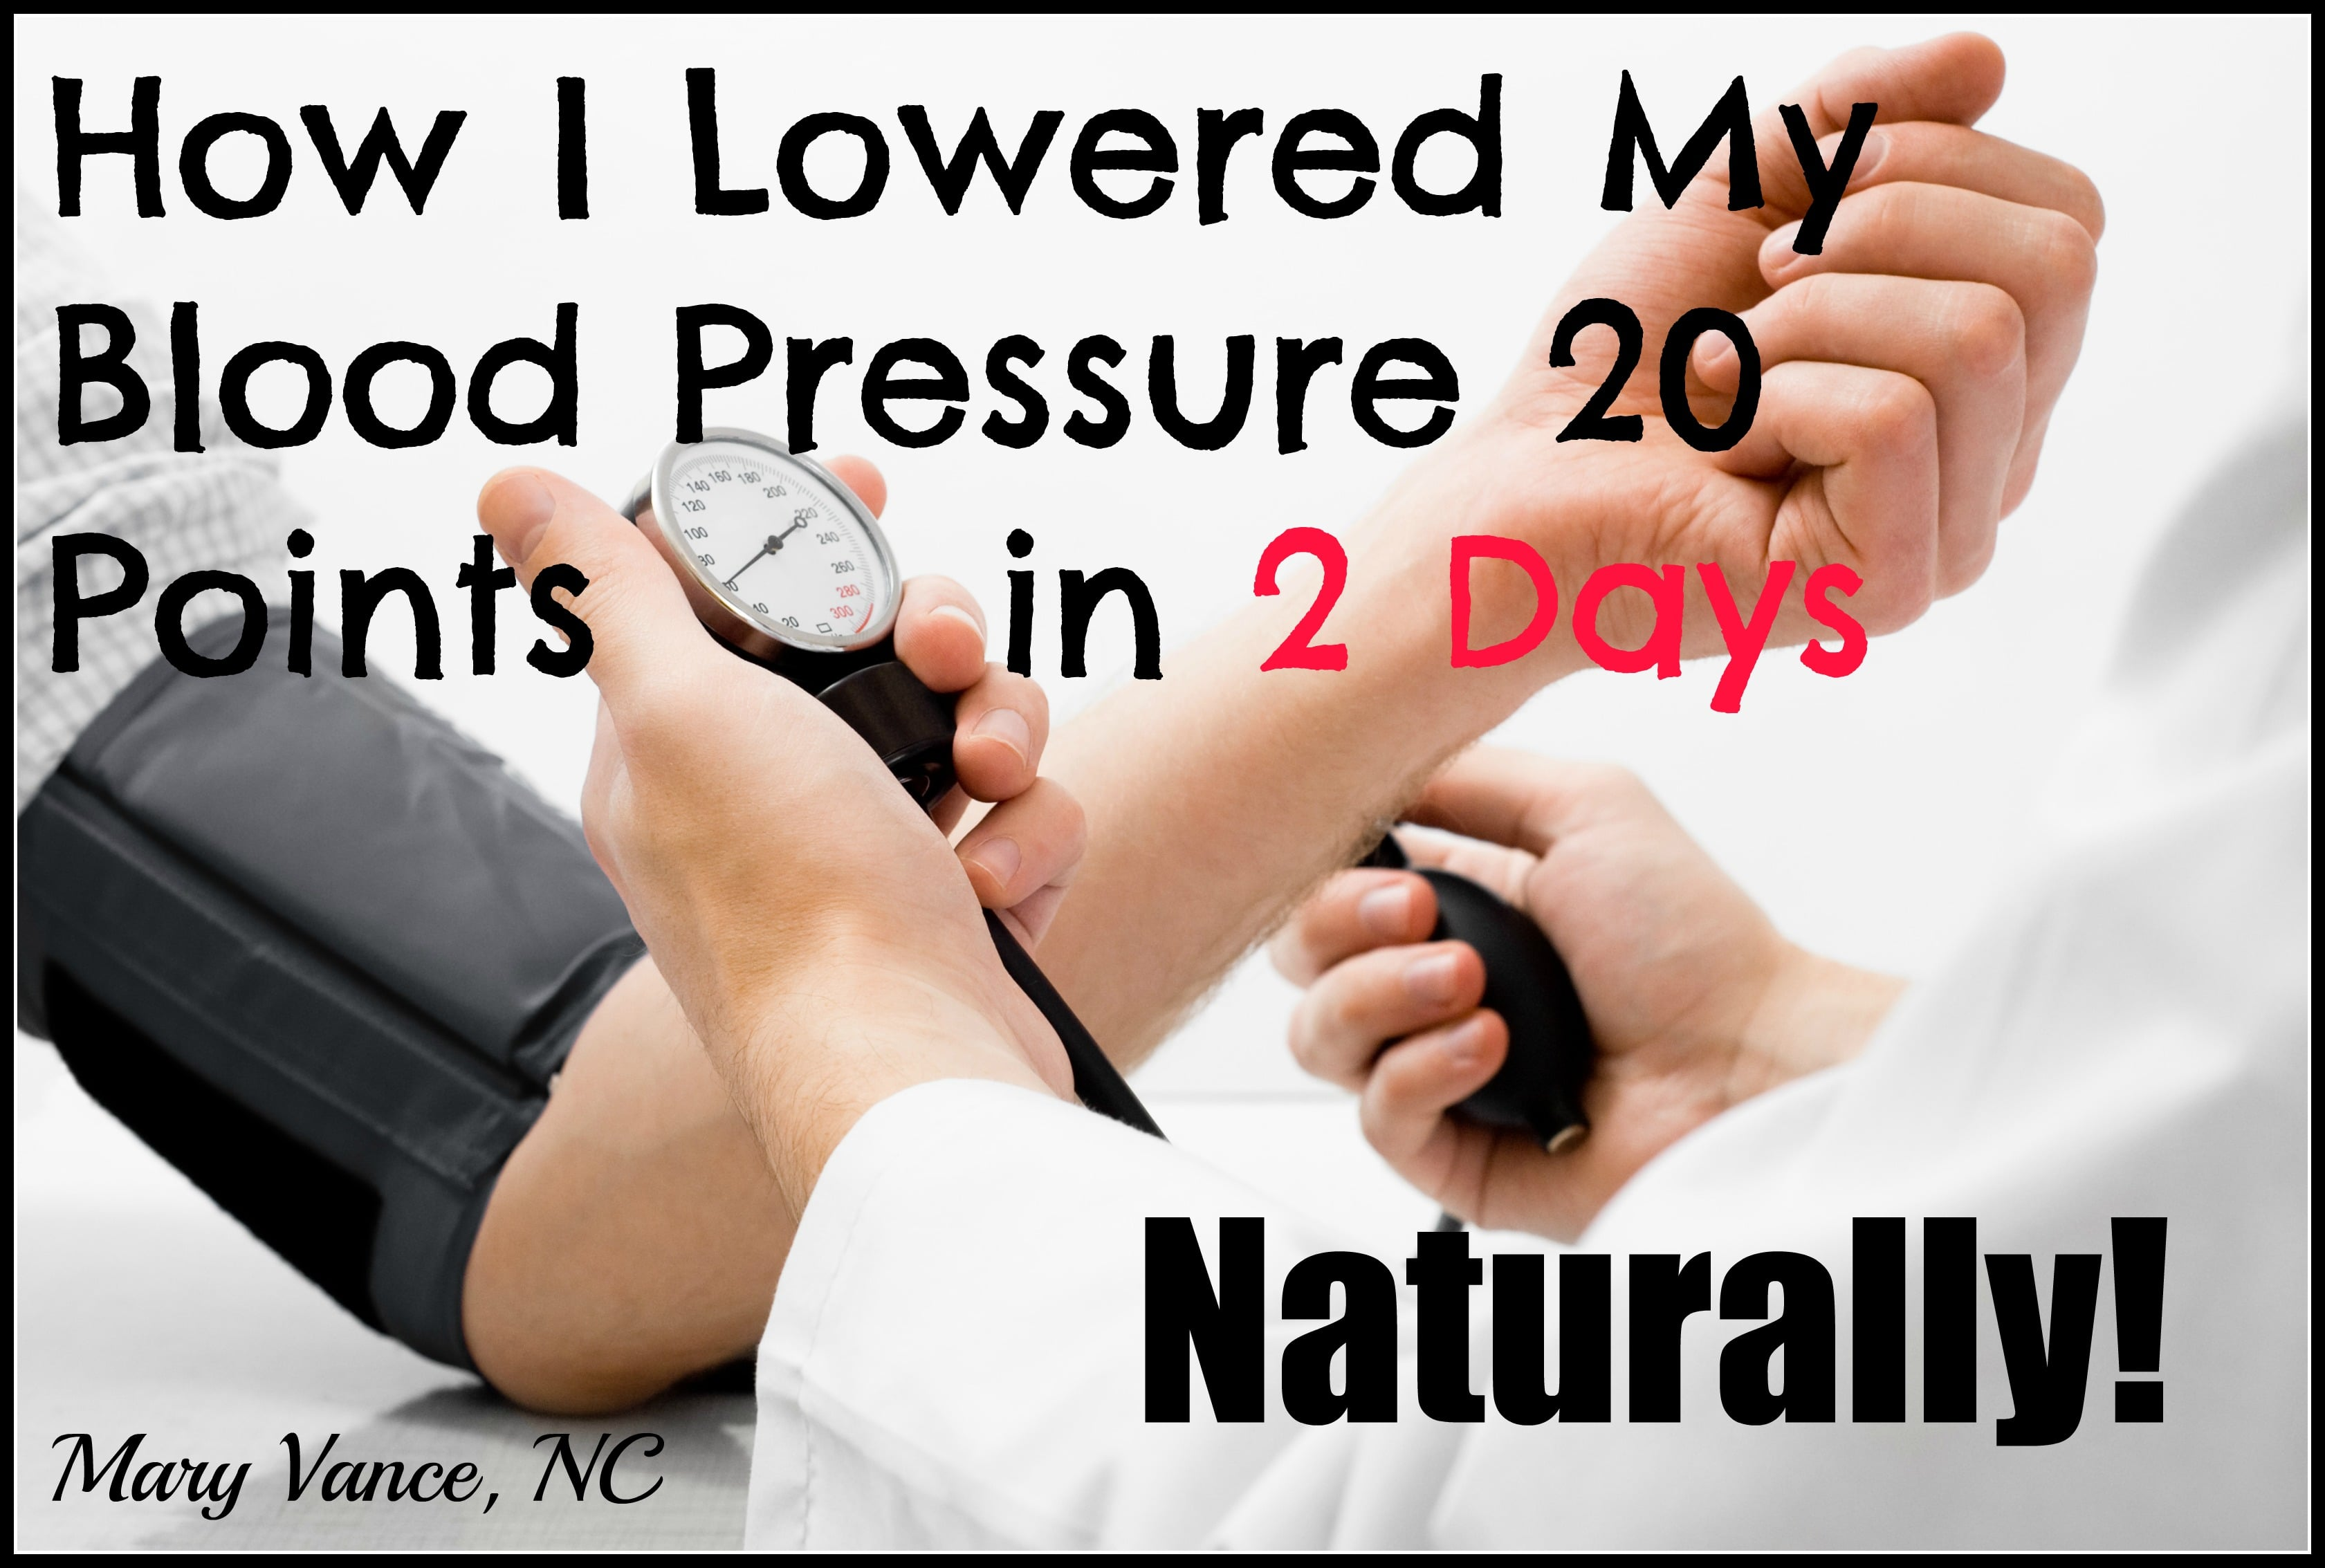 How I Lowered My Blood Pressure 20 Points in 2 Days Naturally